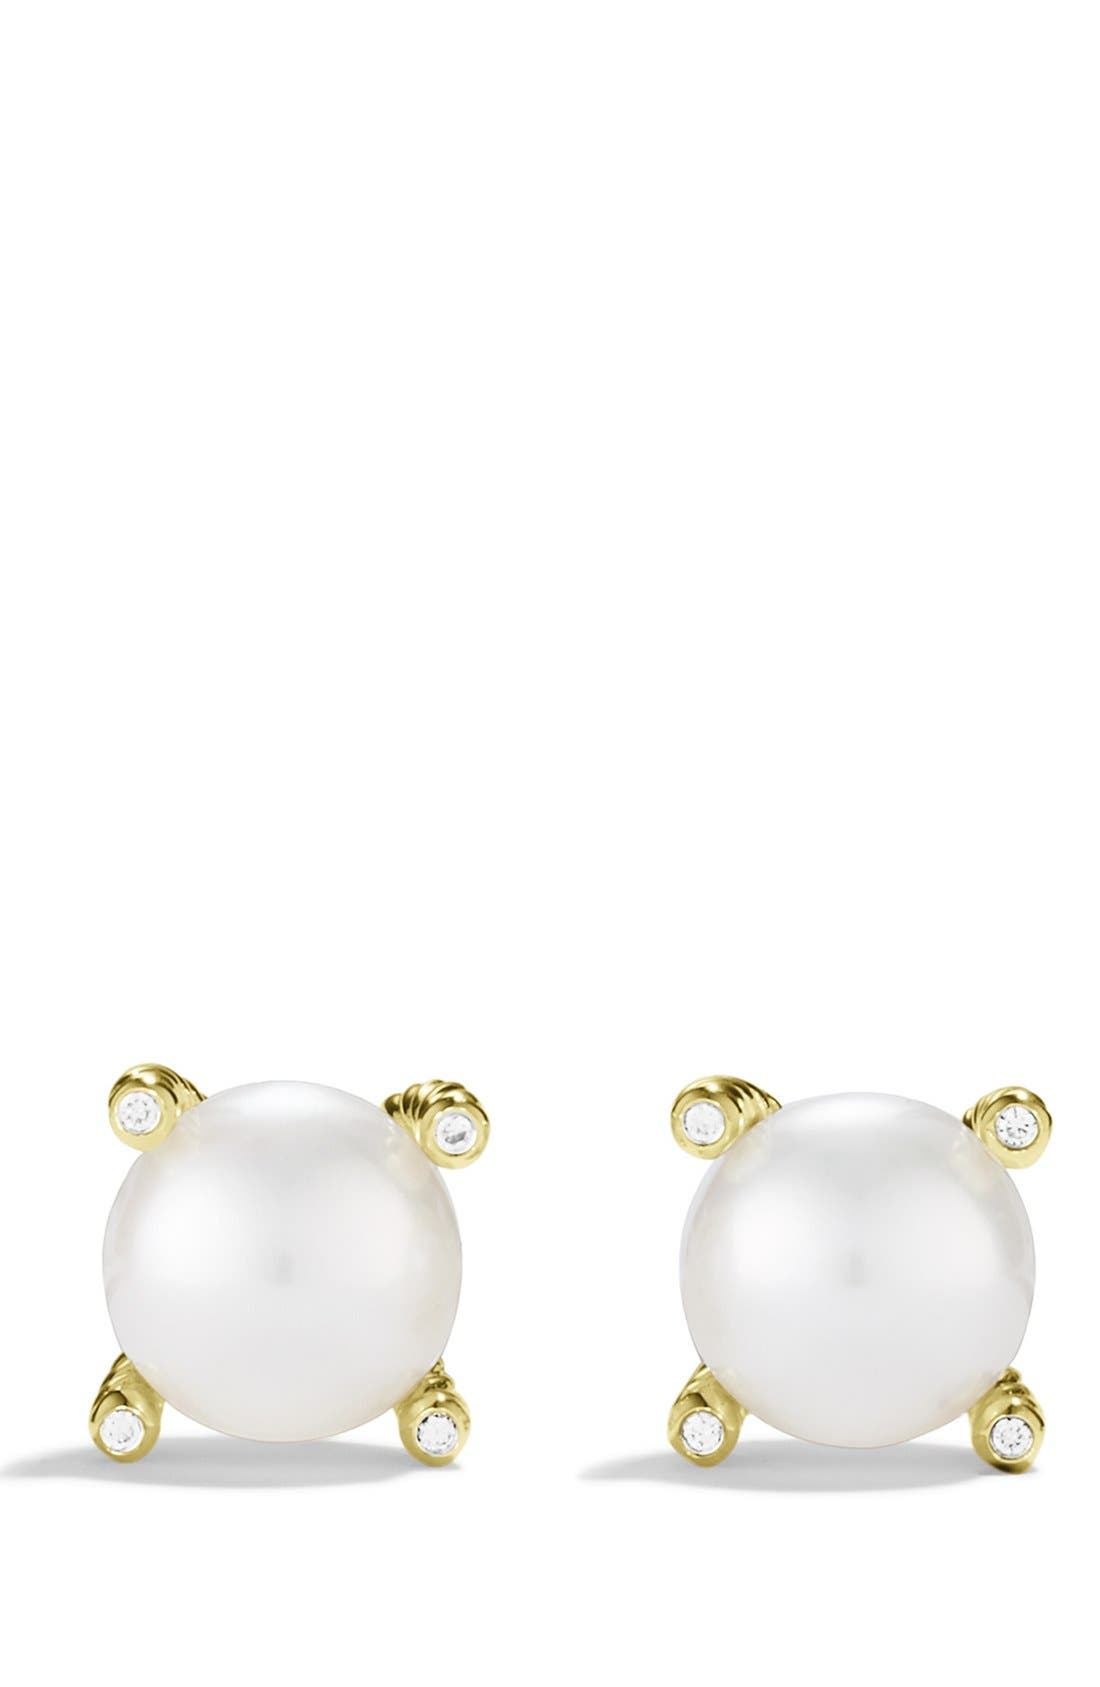 Pearl Earrings with Diamonds in Gold,                             Alternate thumbnail 2, color,                             Pearl